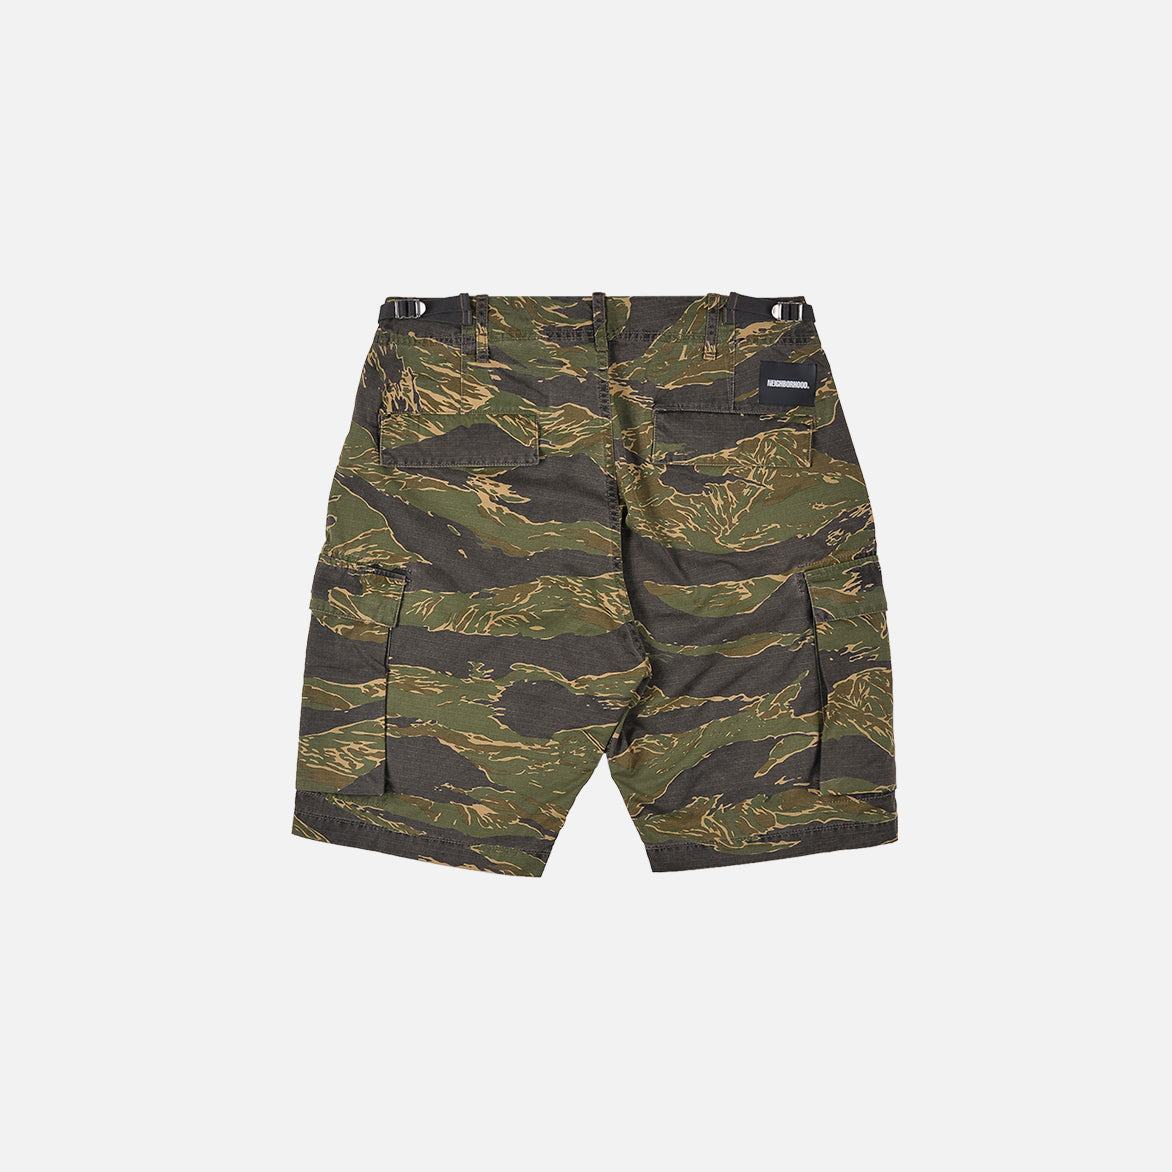 SHORT PANTS / WOVEN - Tiger Stripe